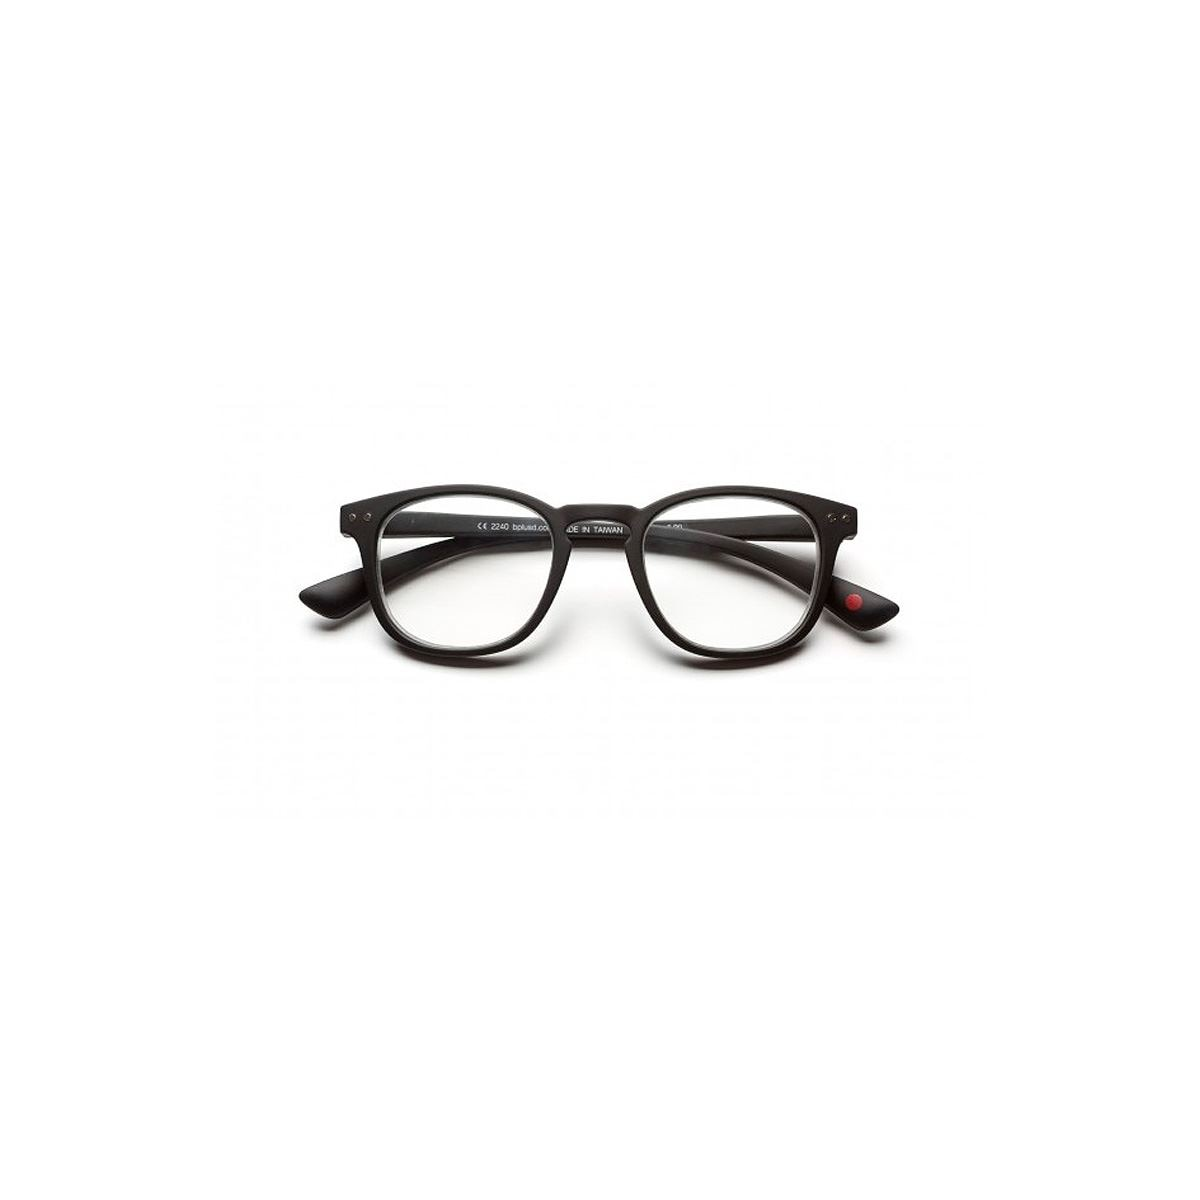 Lentes pre graduados DOT reader matt black  +3.00